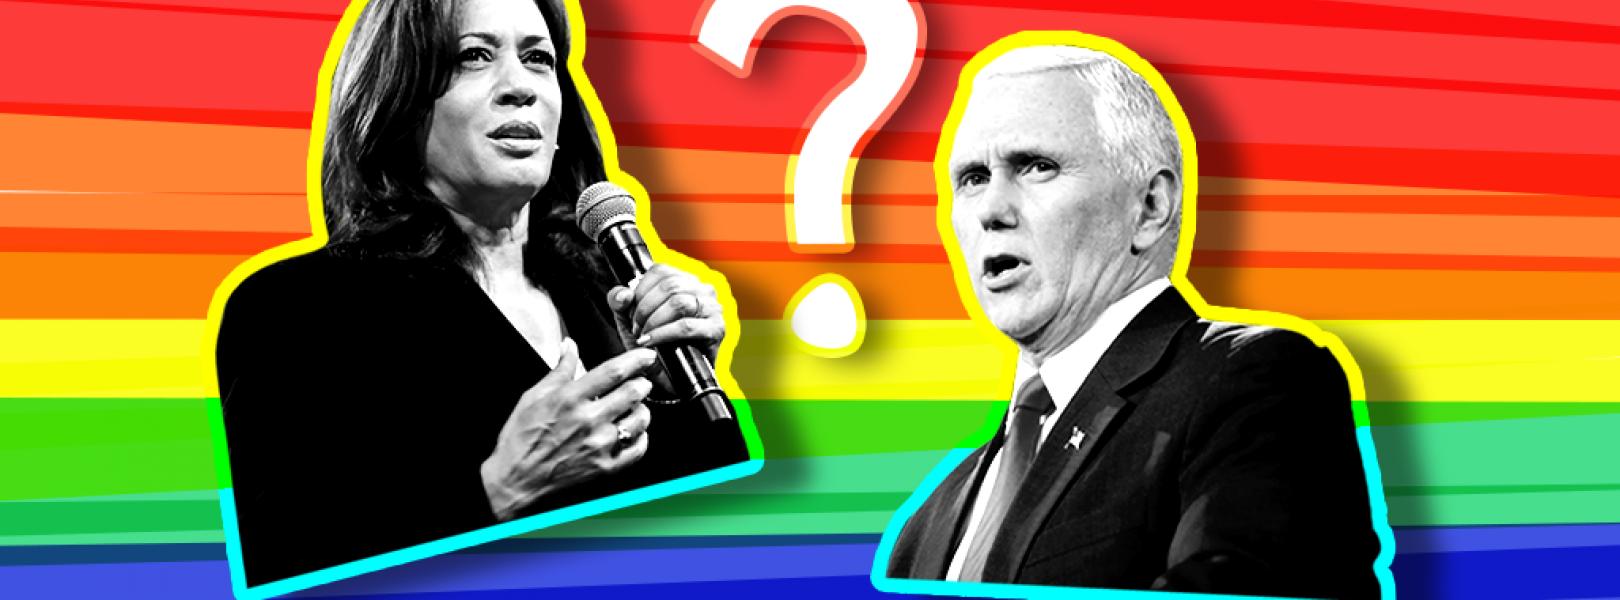 Kamala Harris and Mike Pence in front of a rainbow background